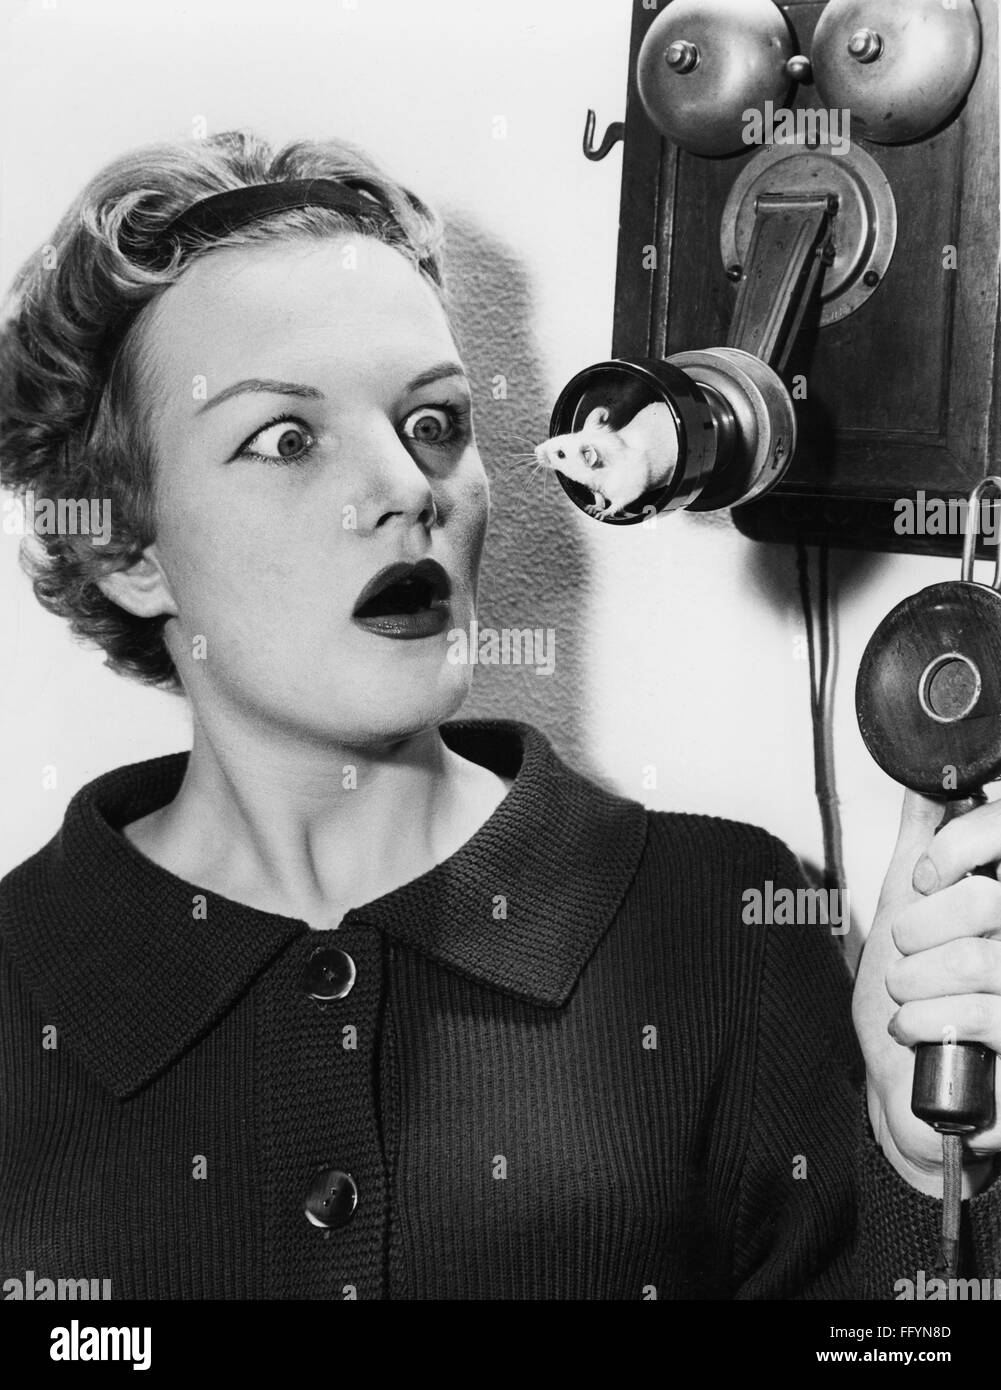 oddities, woman observing mouse in mouthpiece of an old telephone, 1950s, Additional-Rights-Clearences-NA - Stock Image